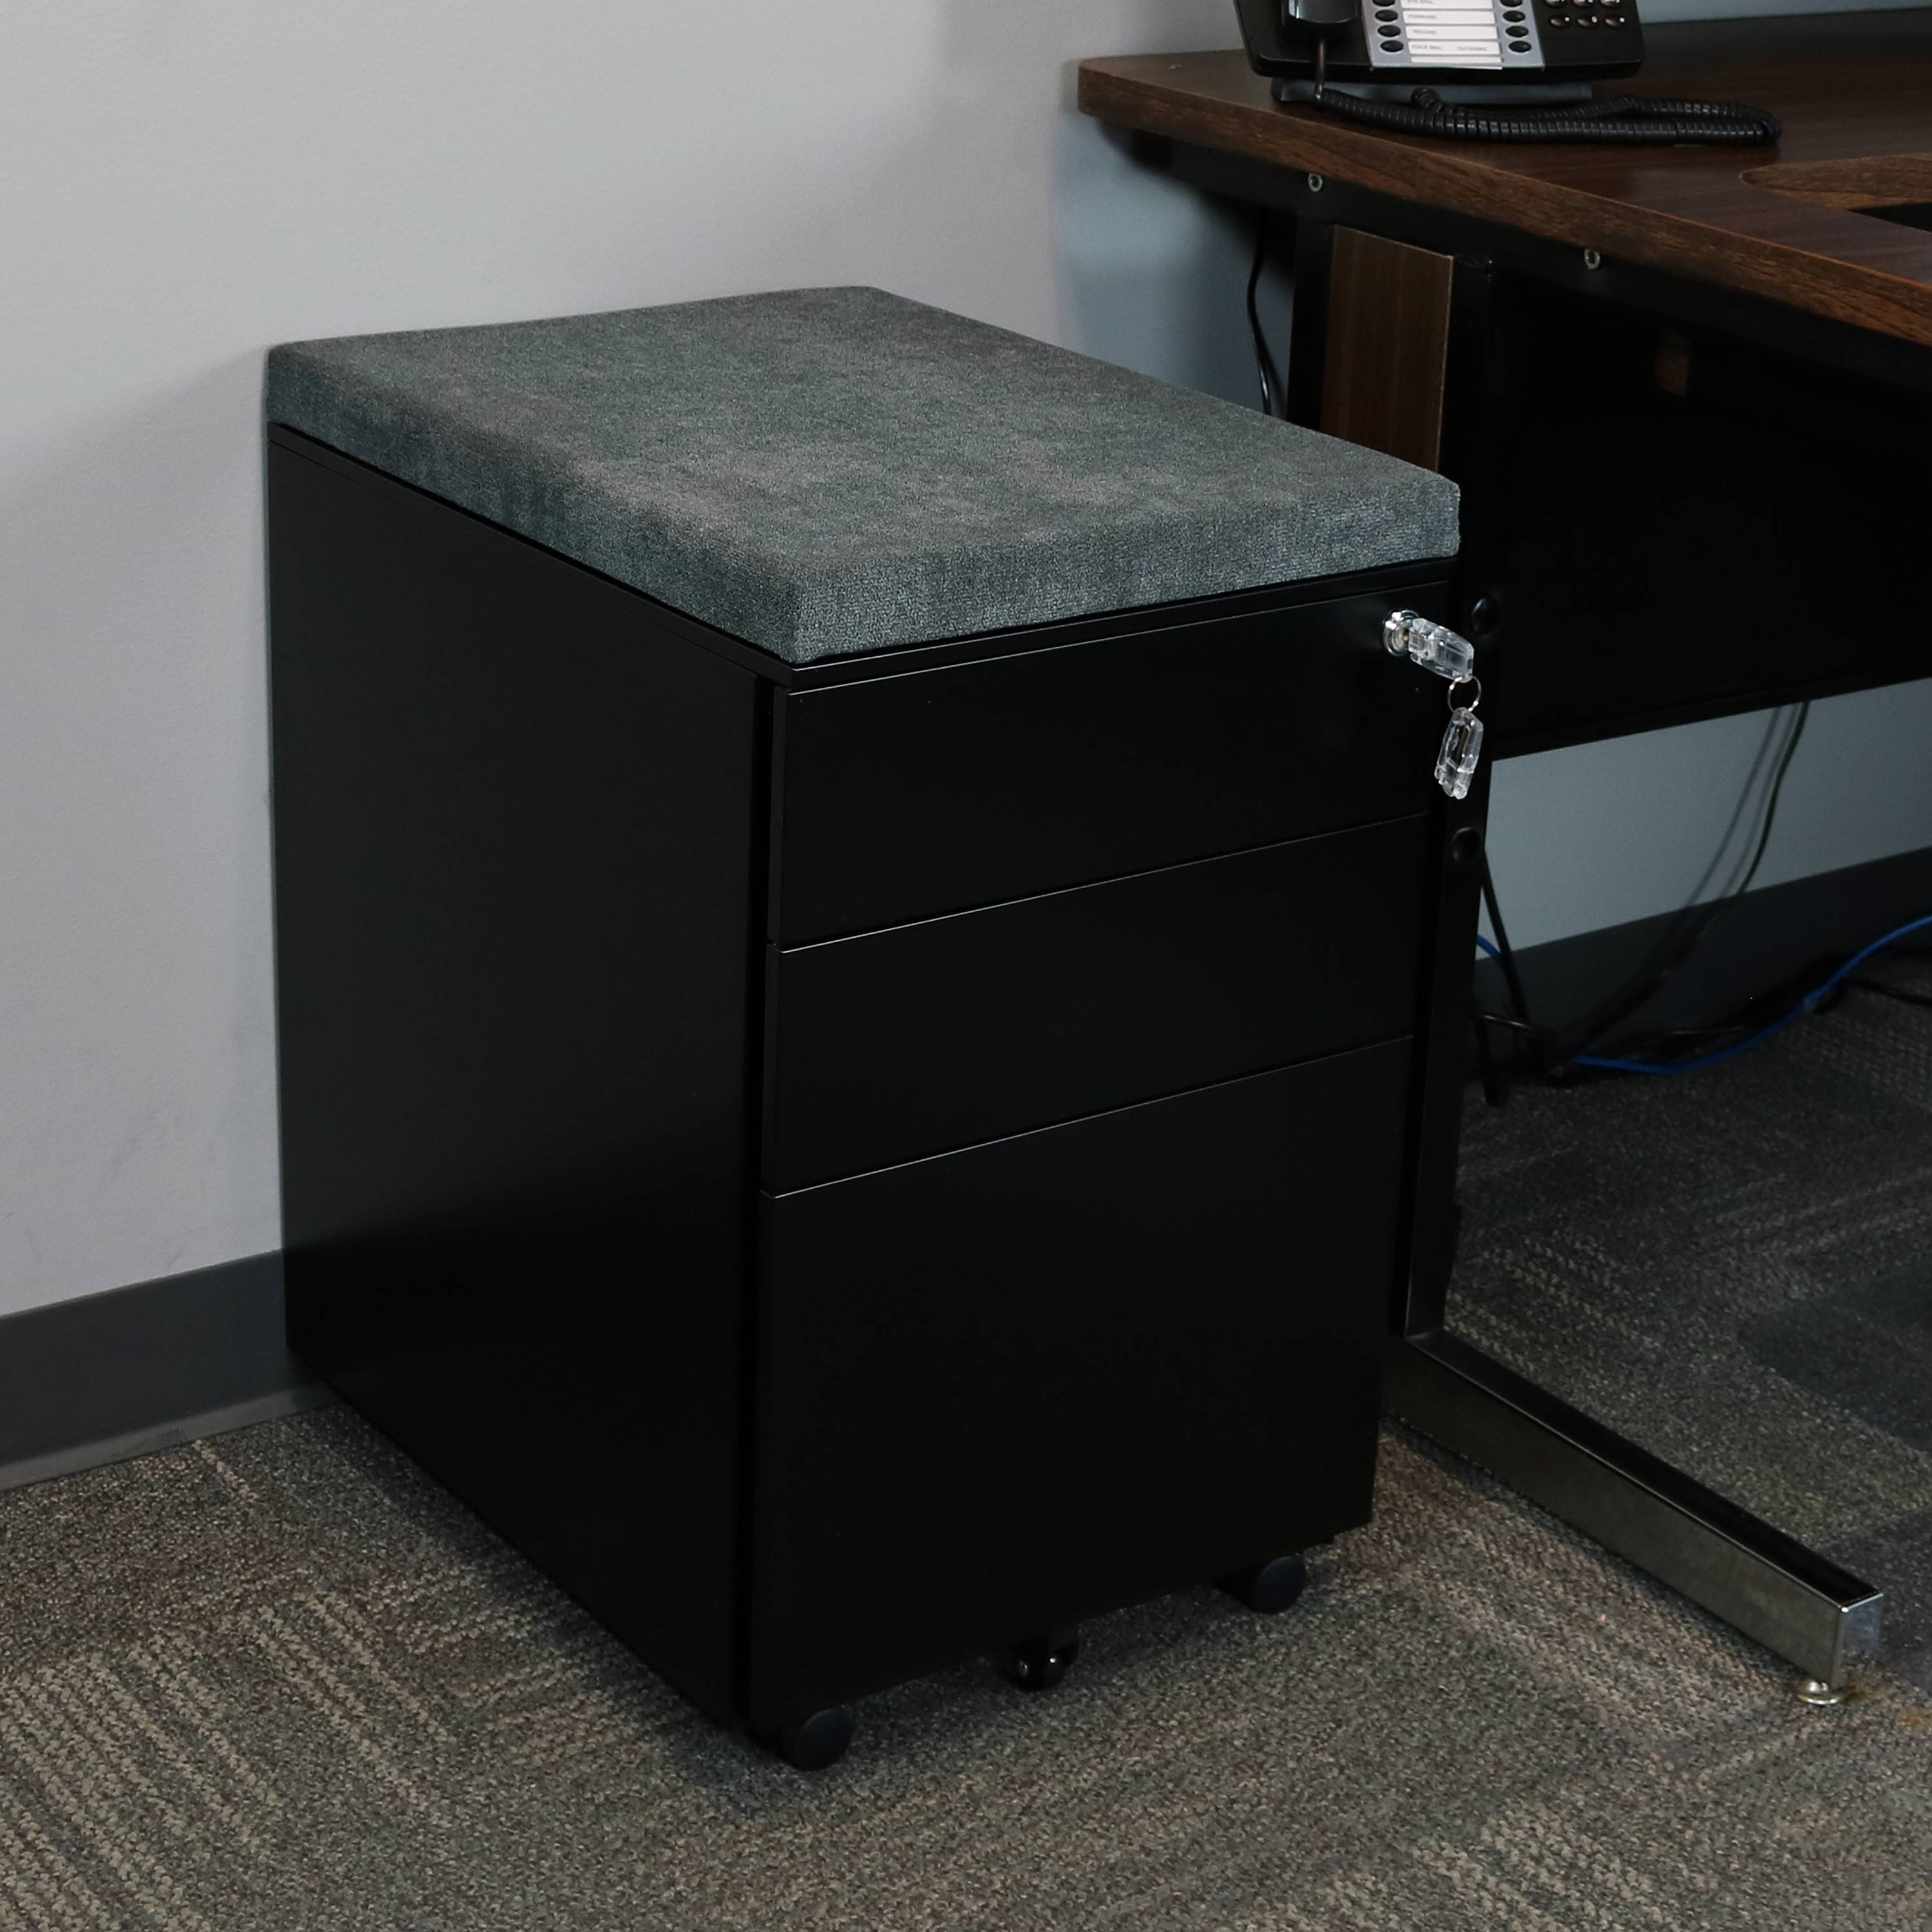 Small Filing Cabinet Casl Brands Rolling Mobile File Cabinet With Lock Cushion Seat Small Steel 3 Drawer Filing Storage System Black With Gray Cushion